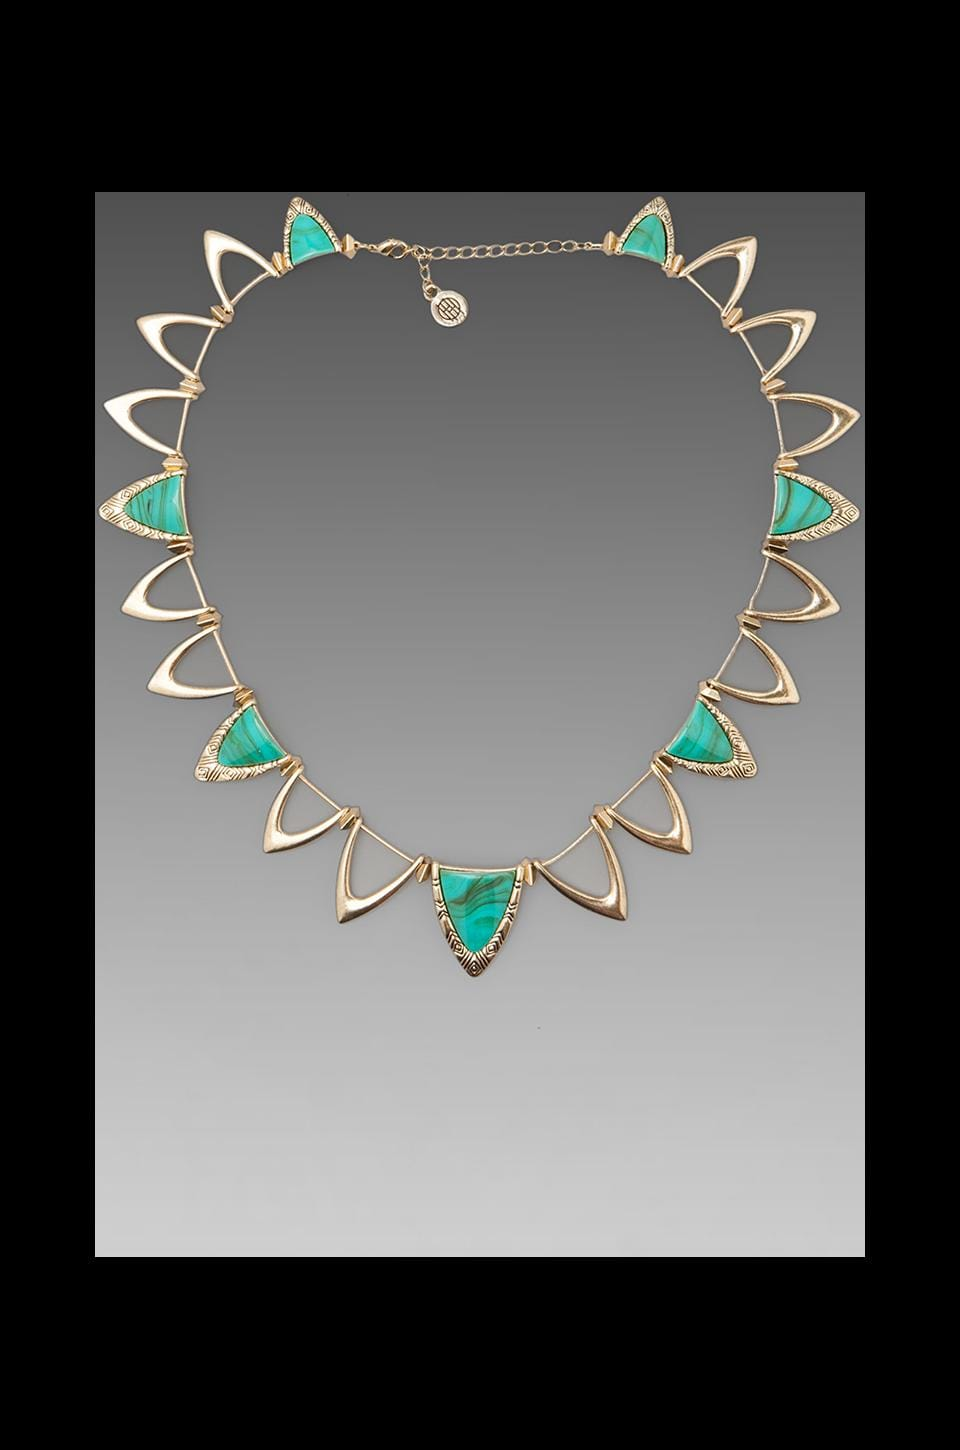 House of Harlow 1960 House of Harlow Goddess Trinity Collar Necklace in Gold/Turquoise